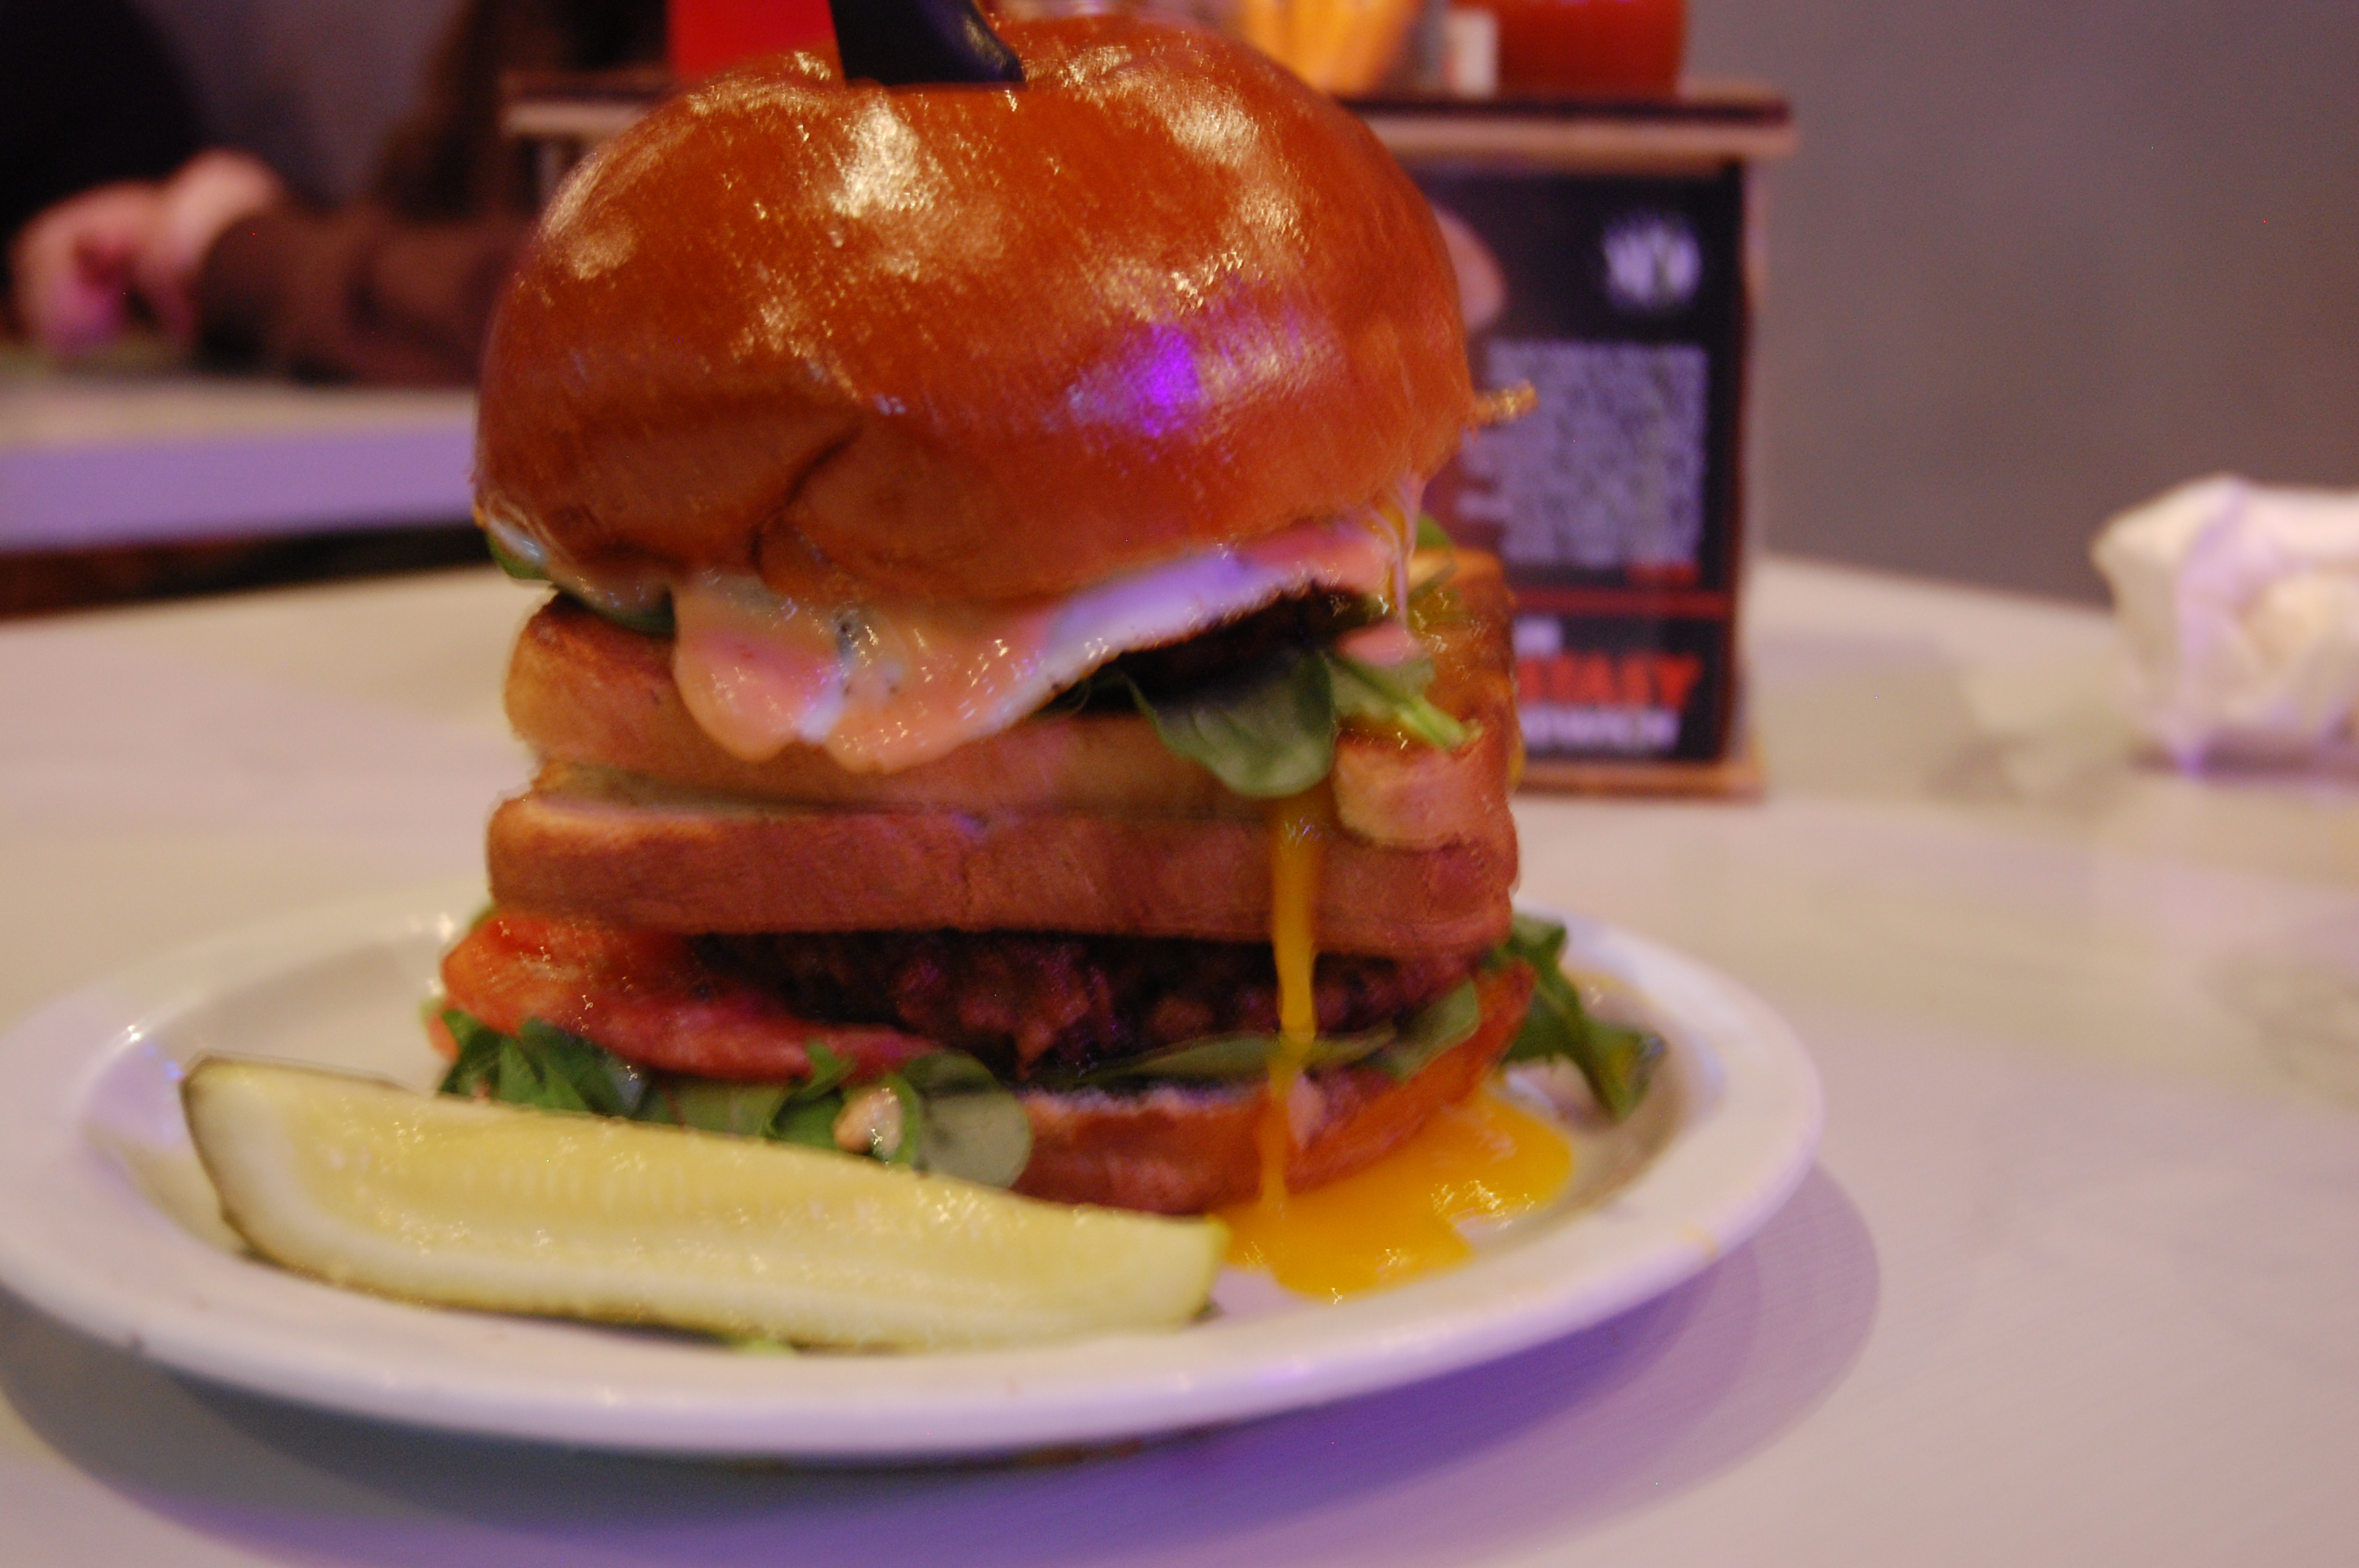 Burger of The Month: The #Excesstasy Burger